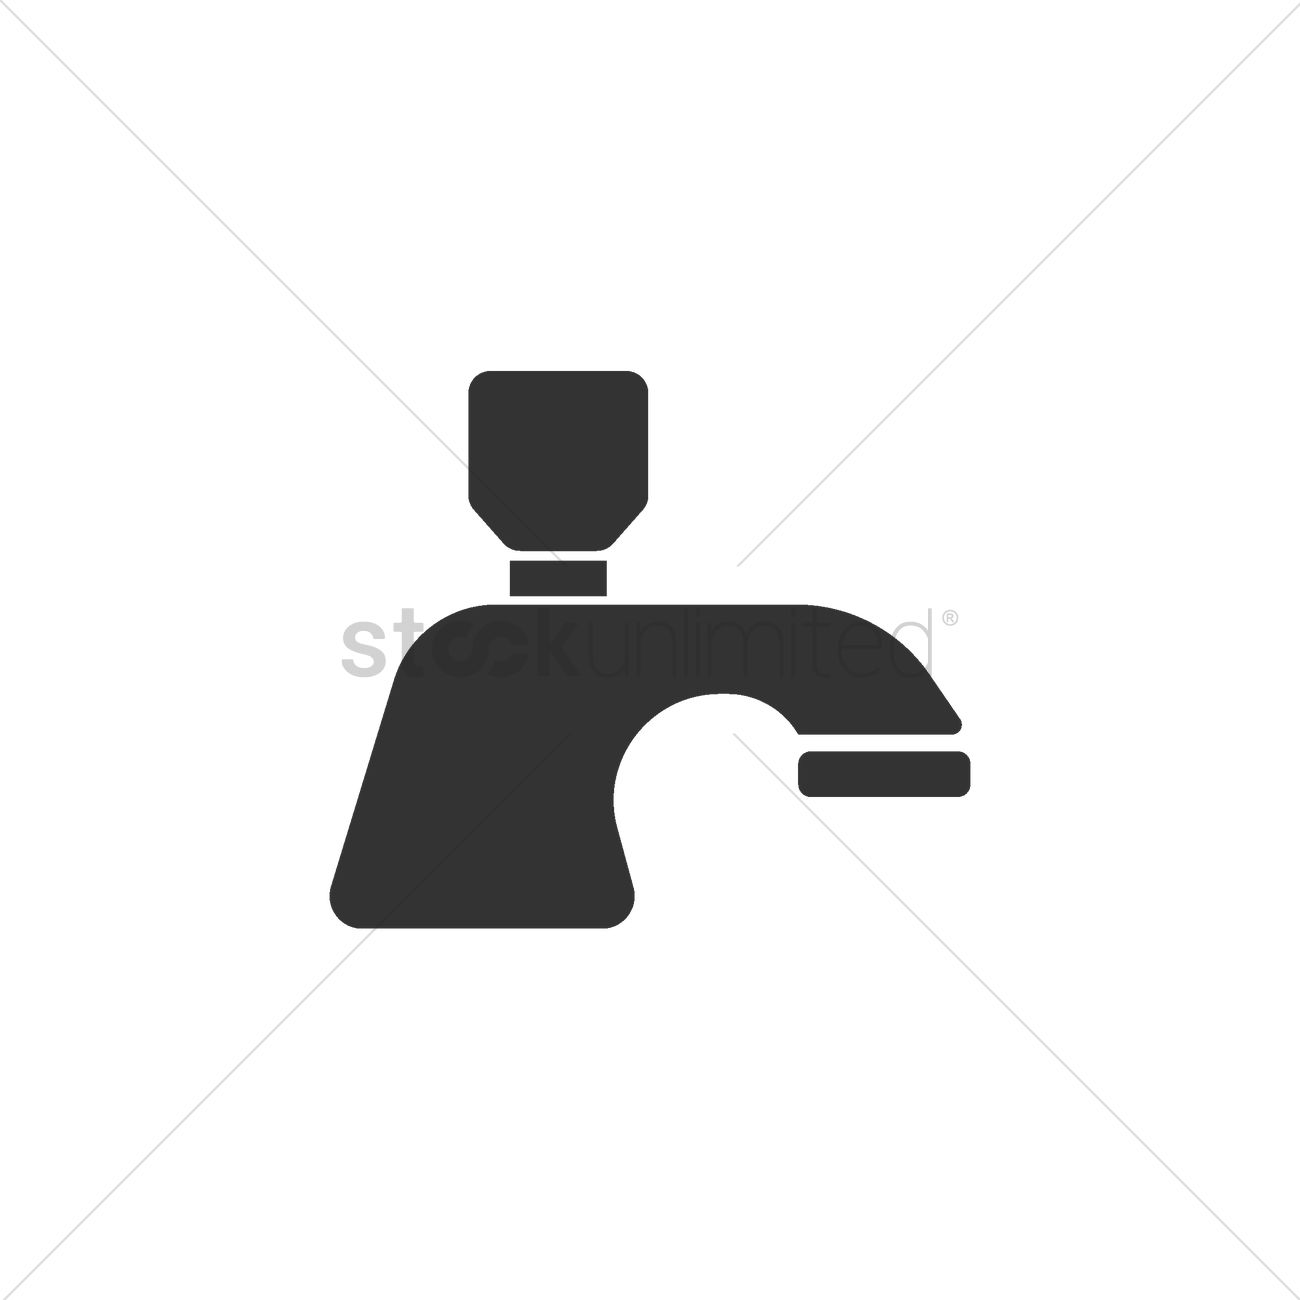 Water faucet Vector Image - 2002898 | StockUnlimited